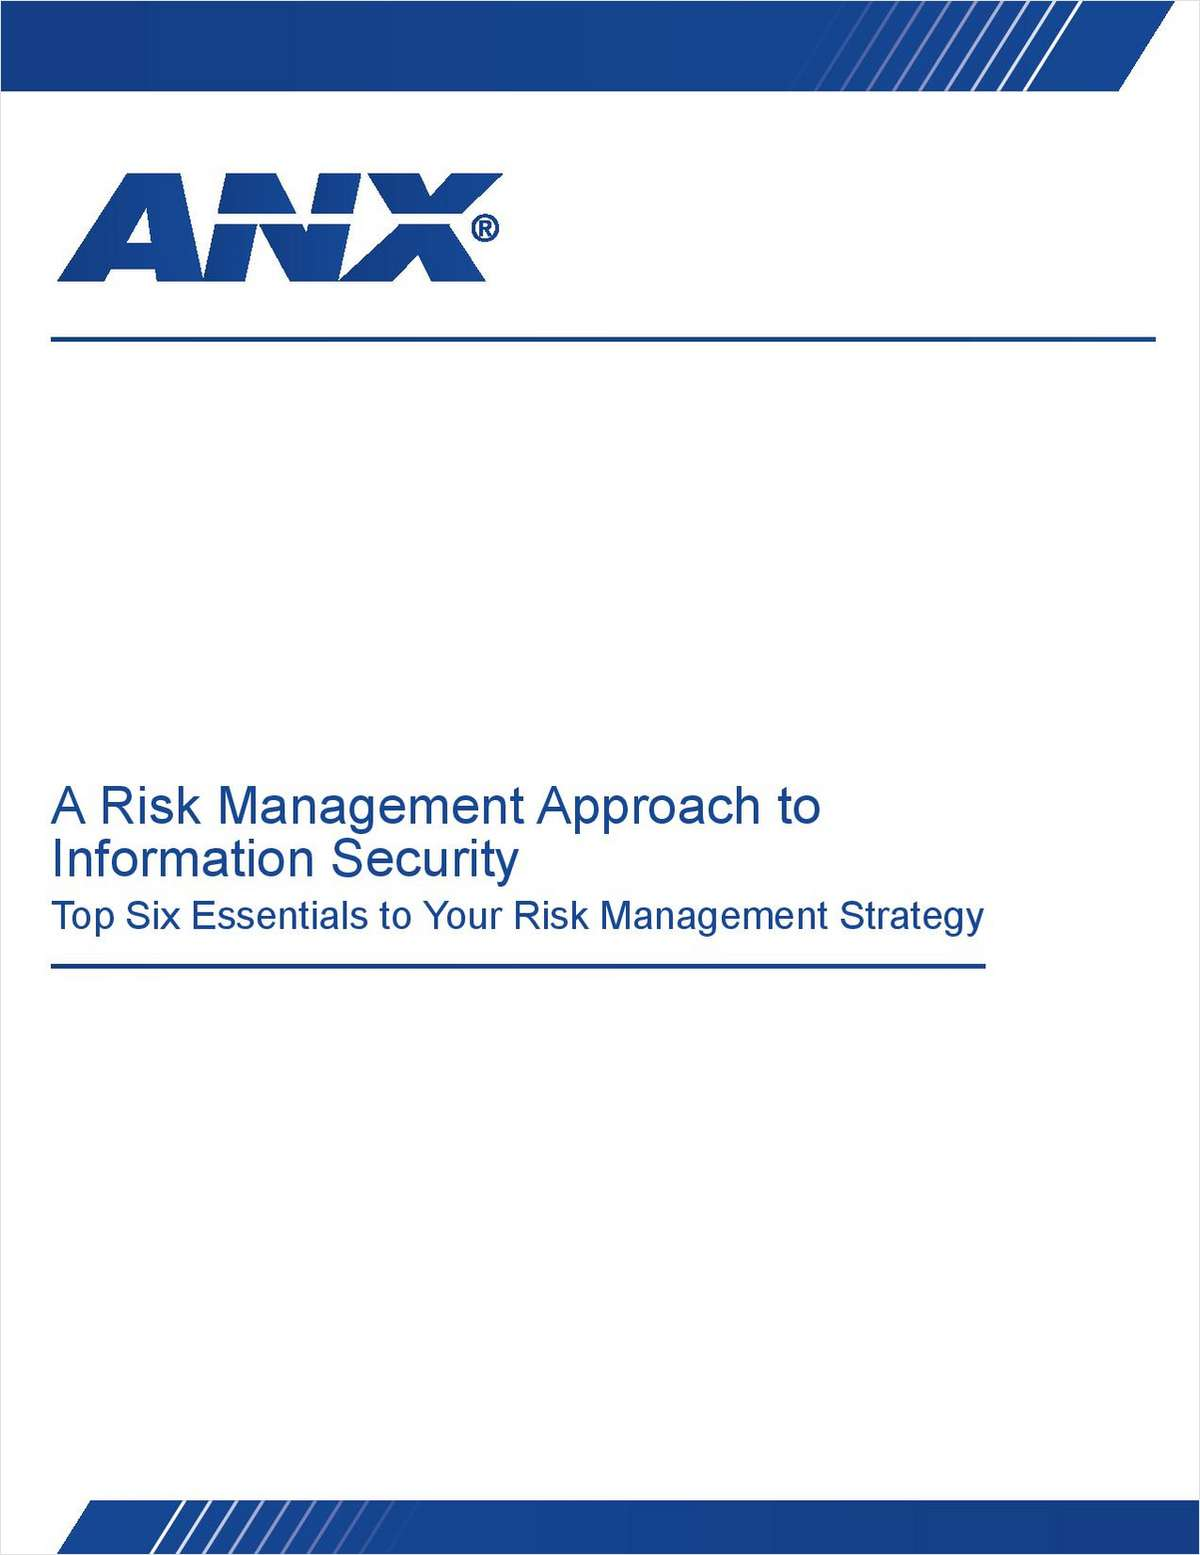 A Risk Management Approach to Information Security